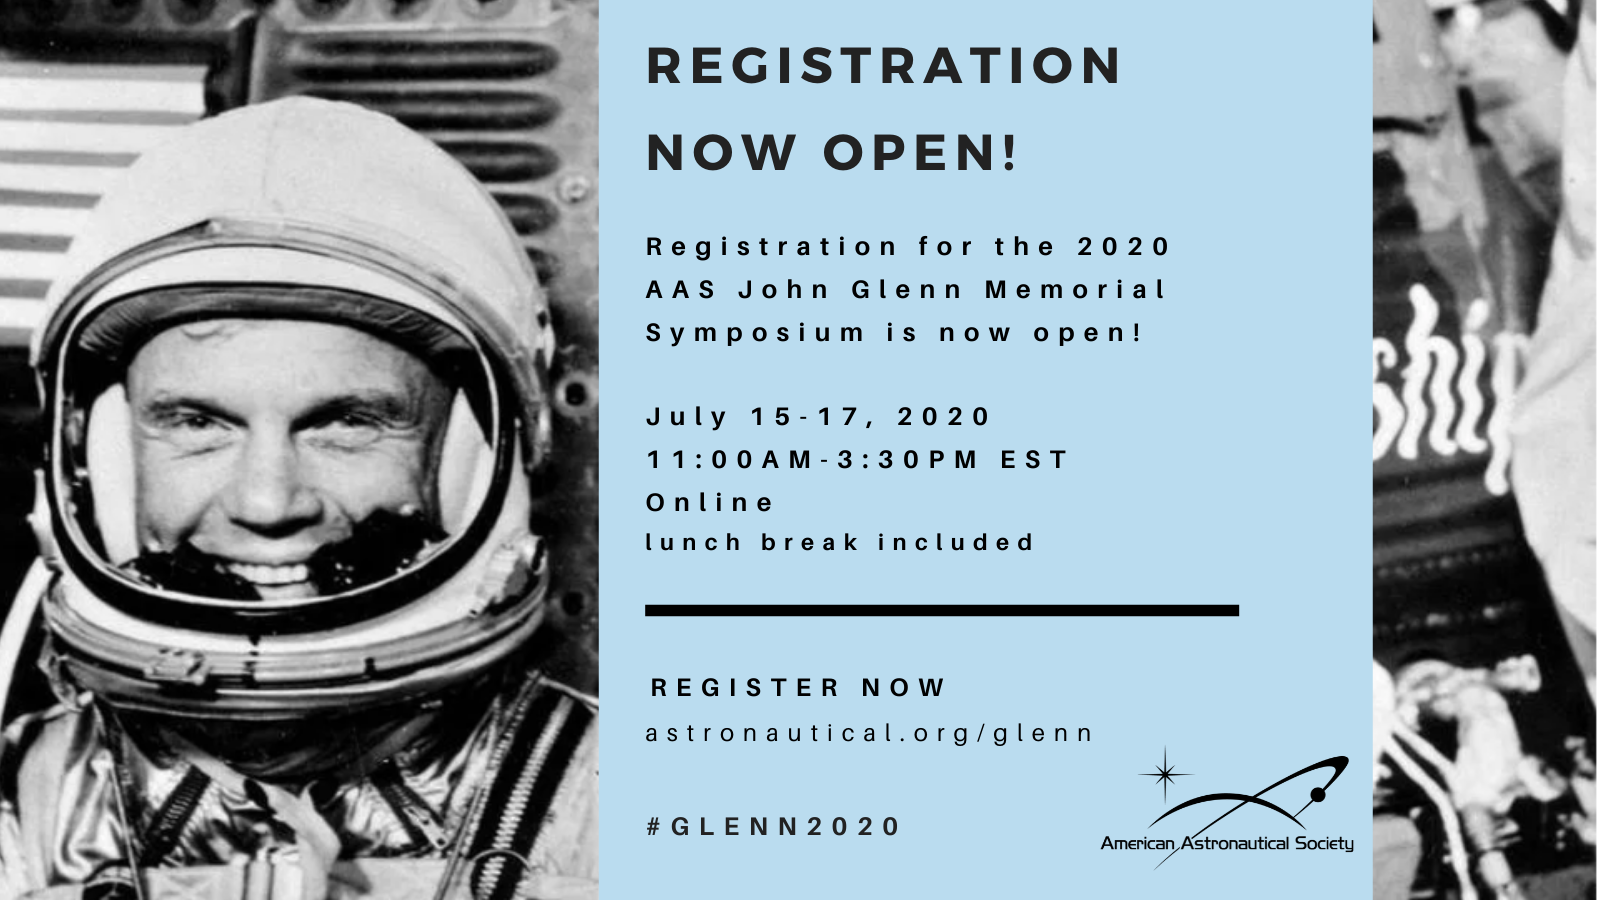 The 2020 AAS John Glenn Memorial Symposium – REGISTRATION NOW OPEN!